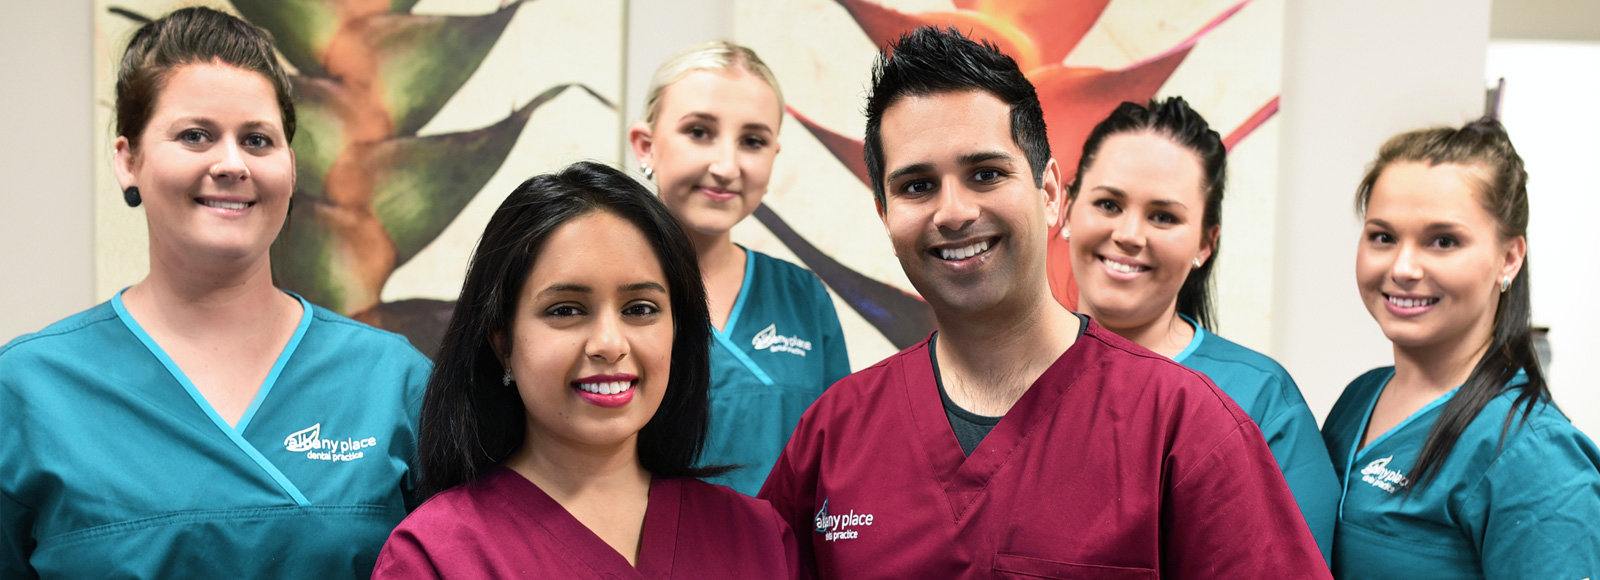 Welcome to Albany Place Dental Practice